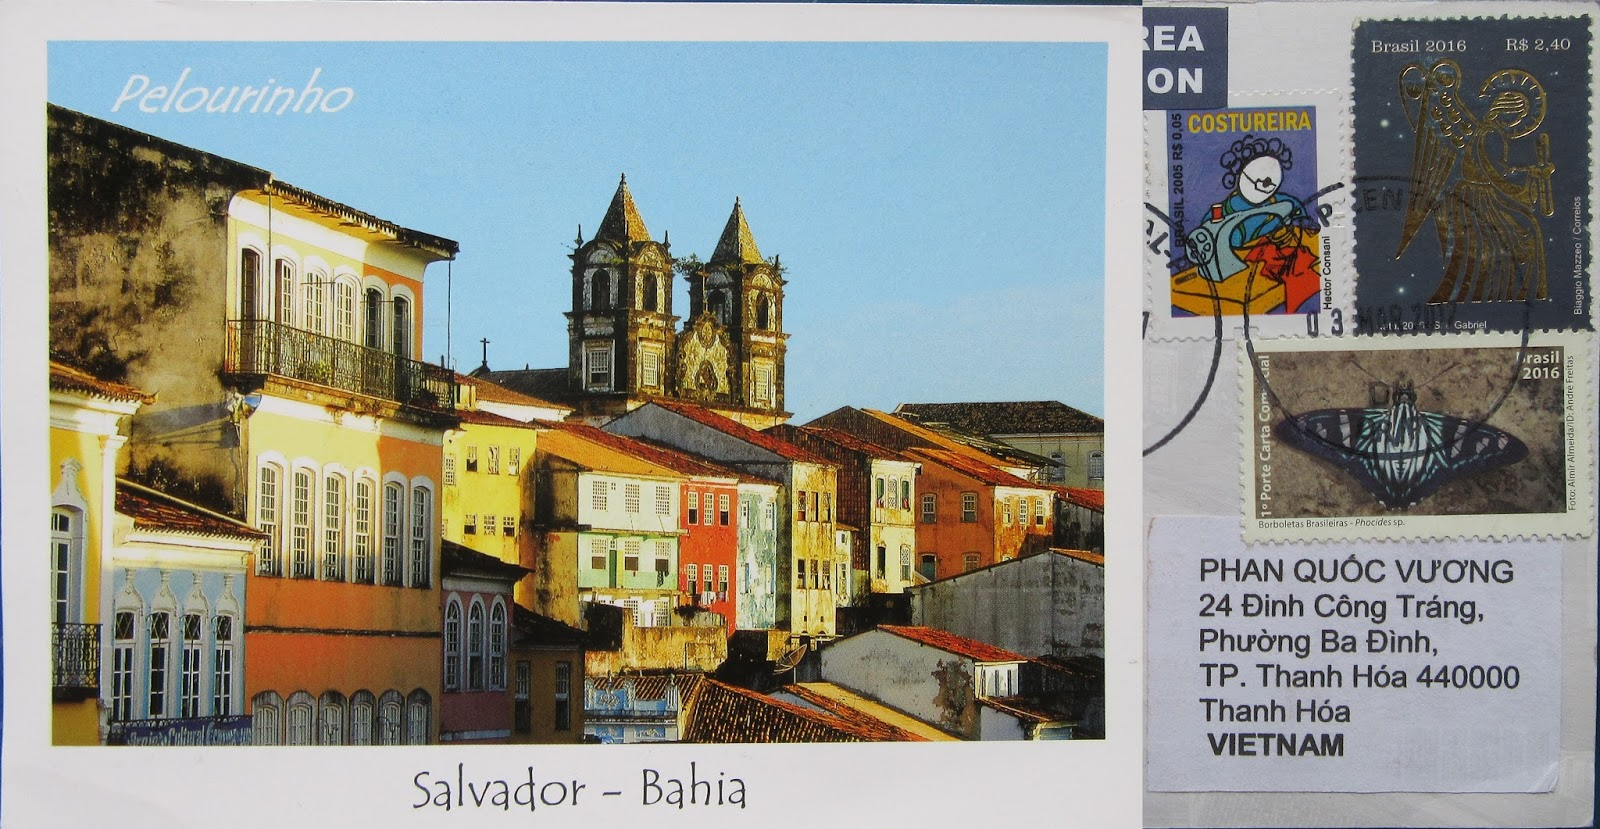 bahia dating site Example of renaissance urban structuring adapted to a colonial site  civil and military colonial architecture dating from  salvador de bahia is an eminent.